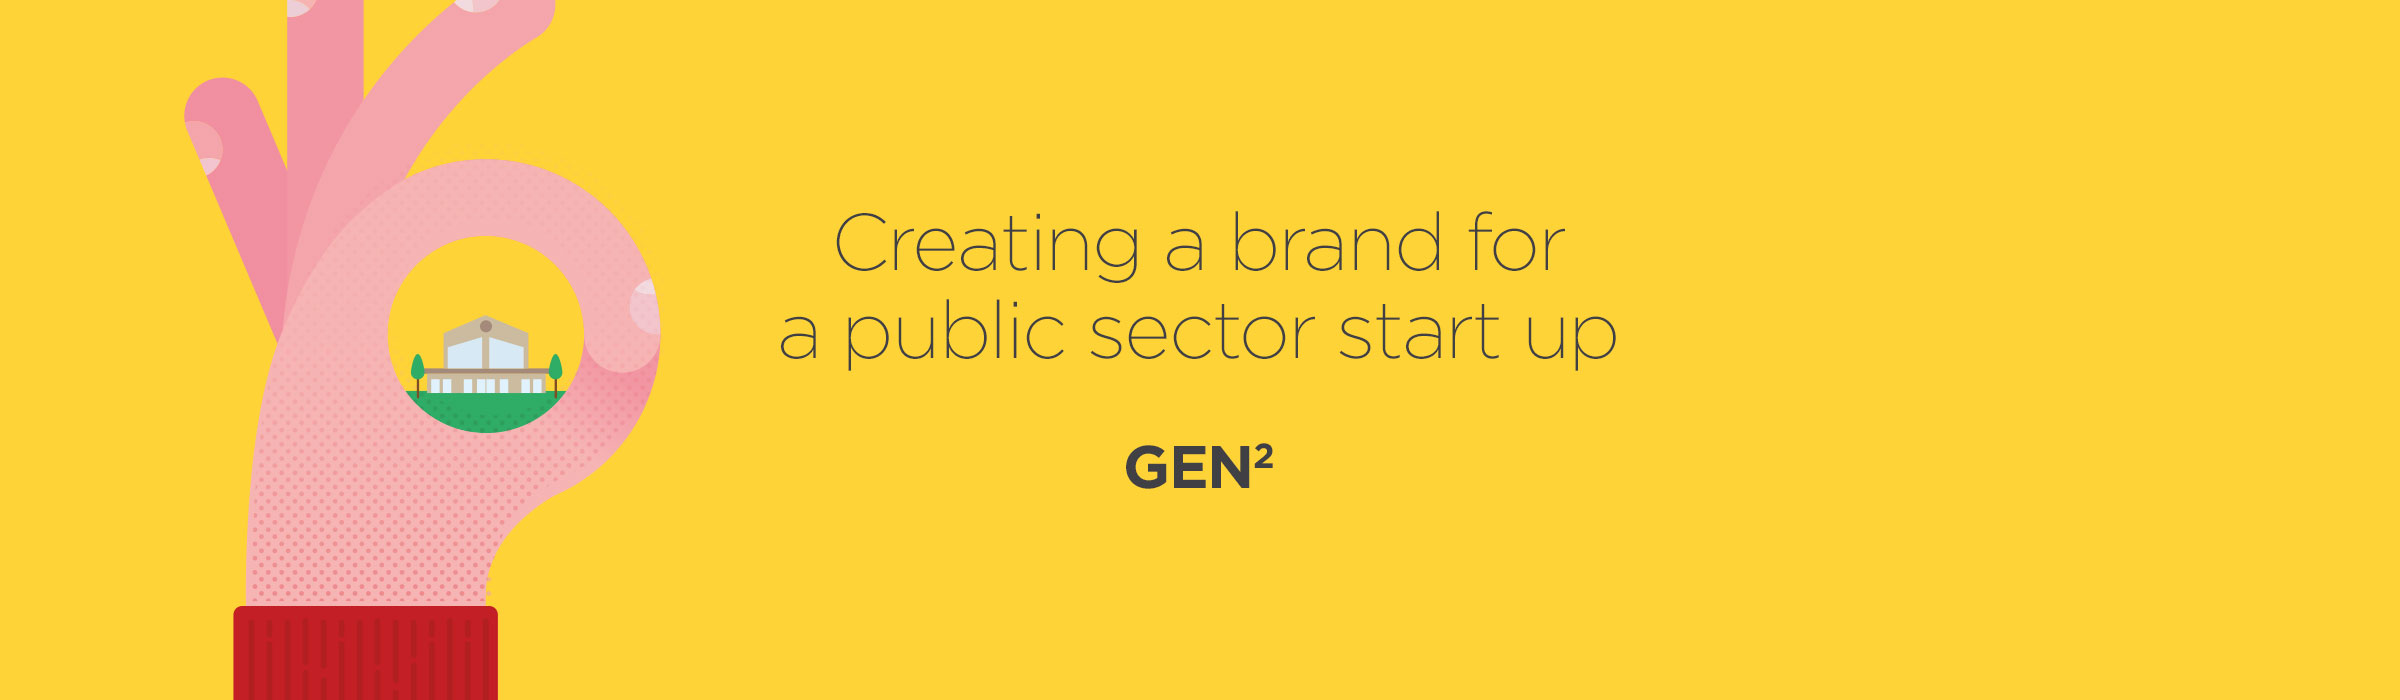 Gen2 – Creating a brand for a public sector start up